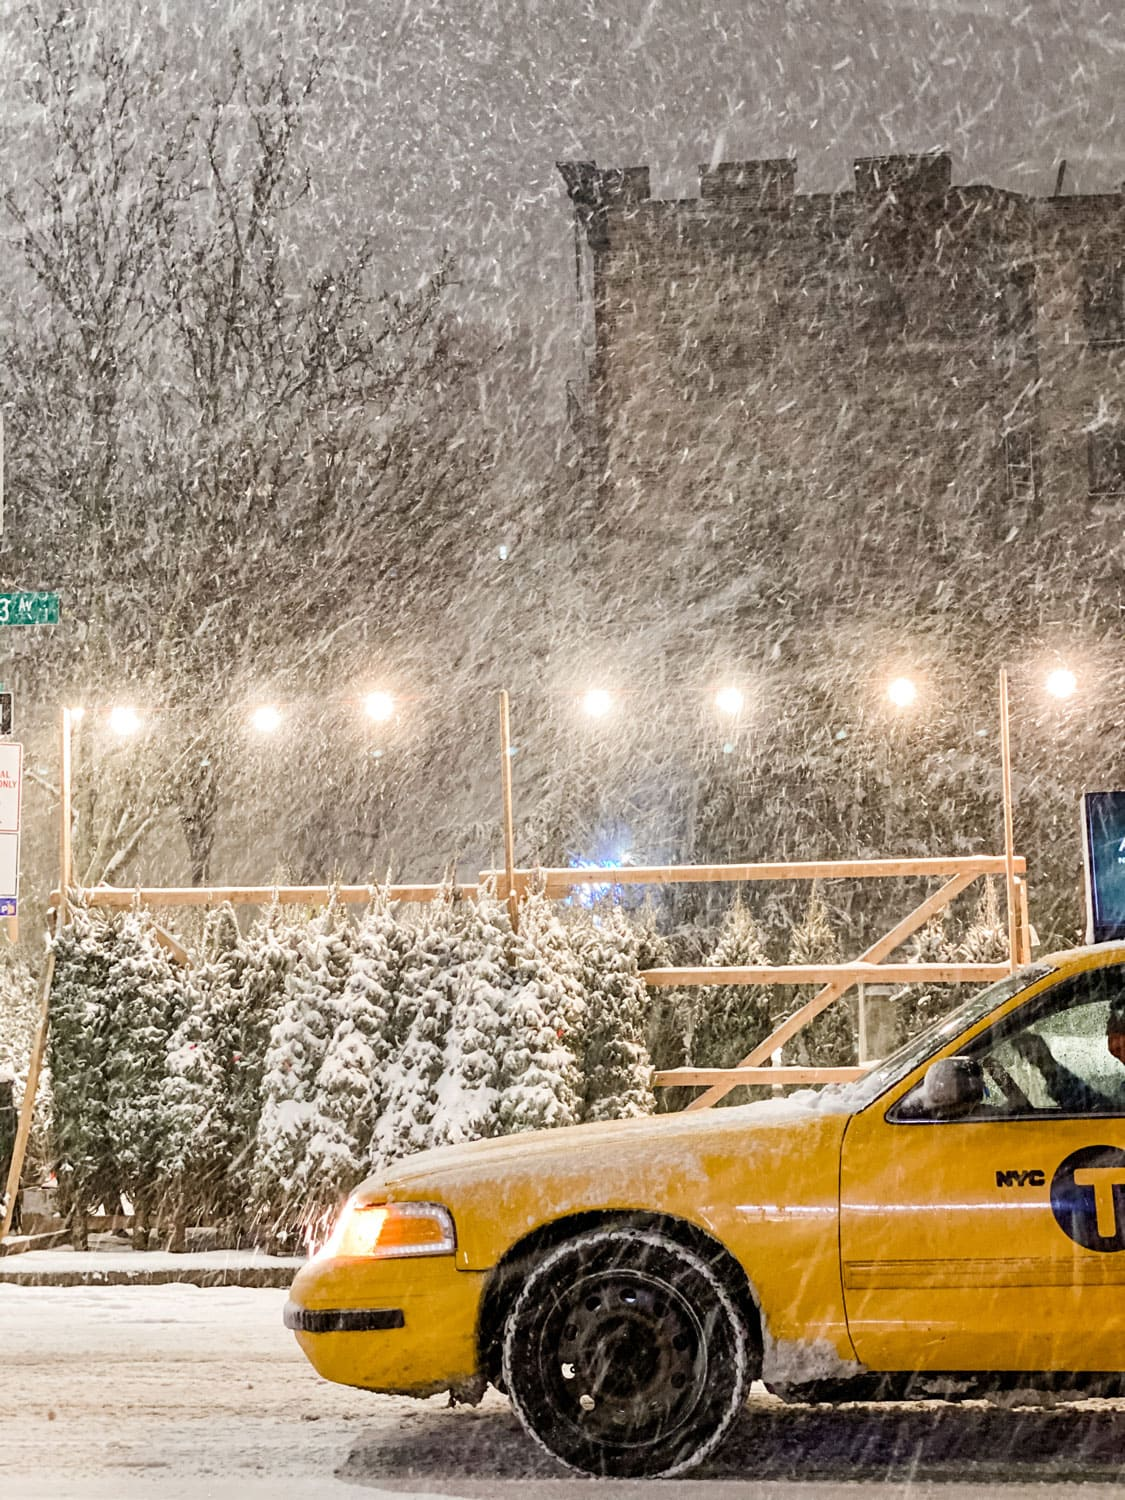 Lifestyle blogger Annie Diamond take in Christmastime in New York...a yellow taxi driving by a sidewalk tree stand in a snow storm feels slightly magical.